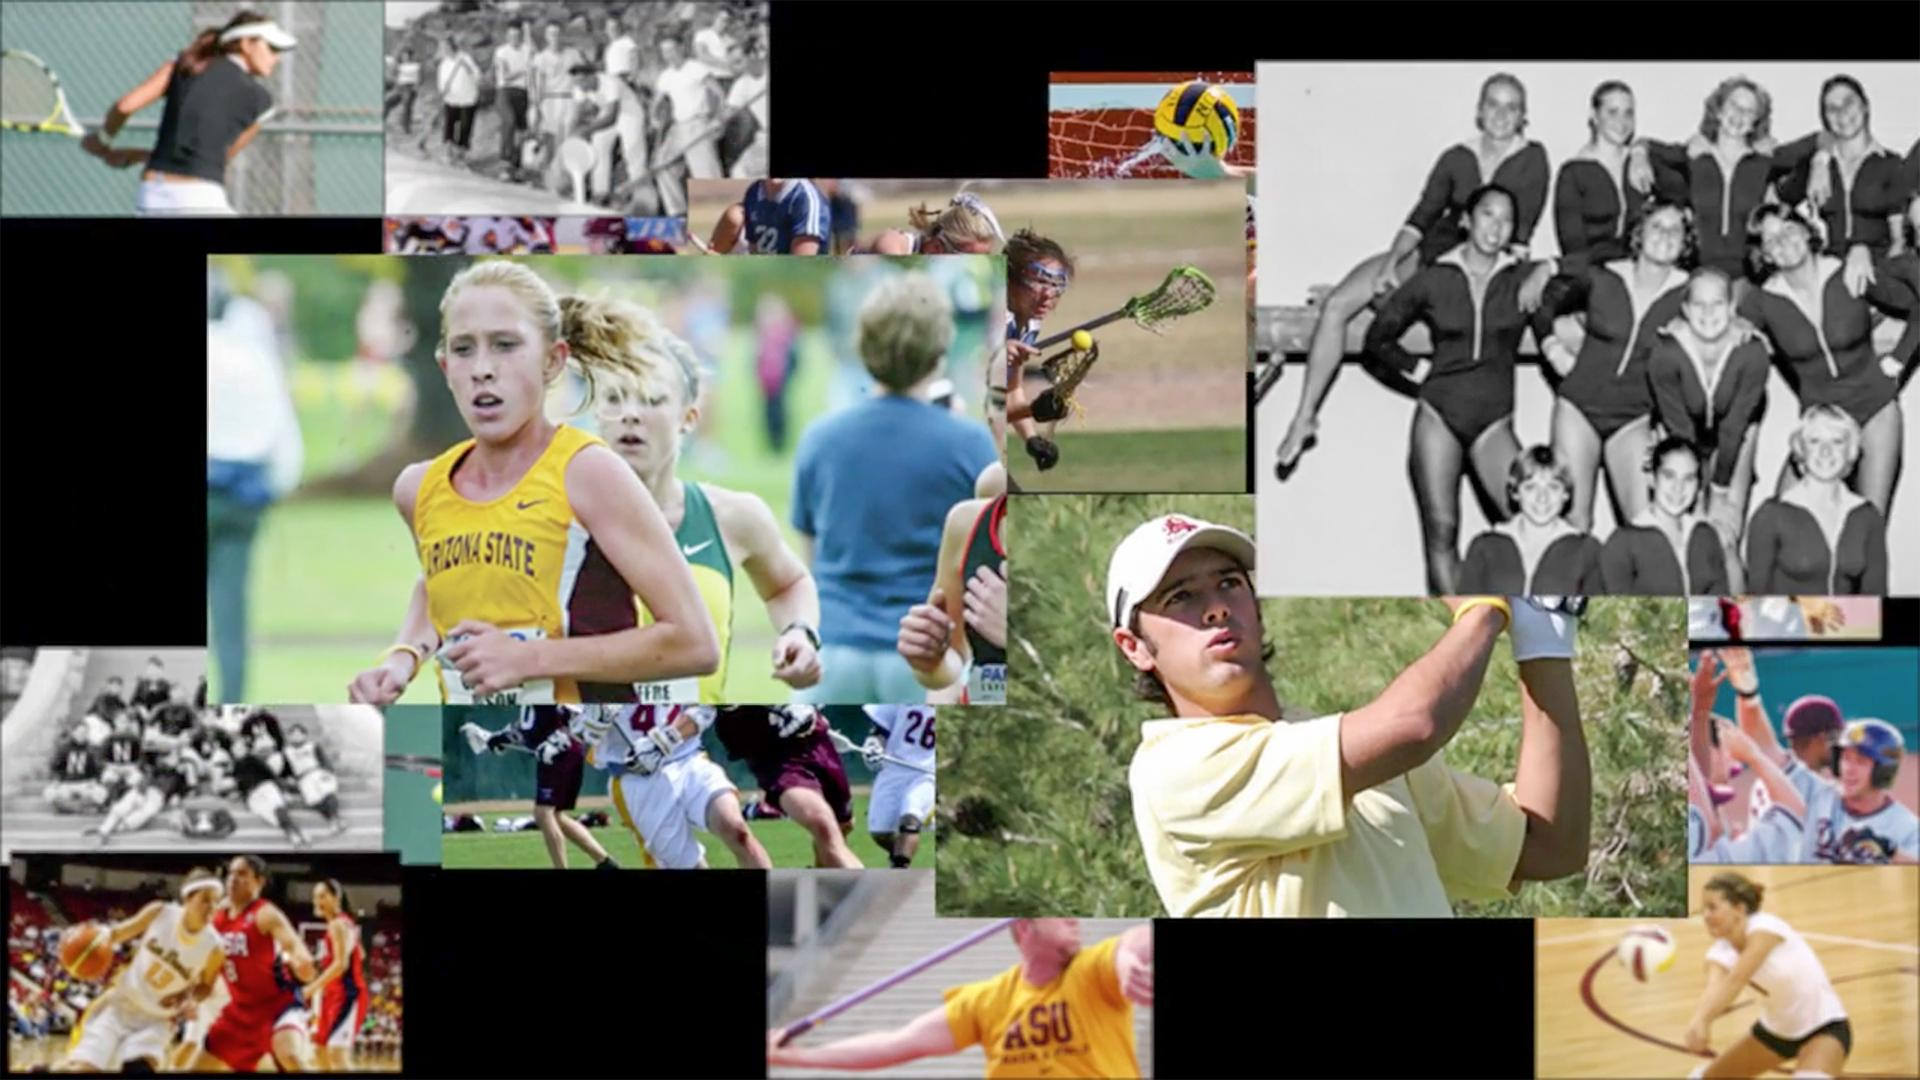 Sports image collage